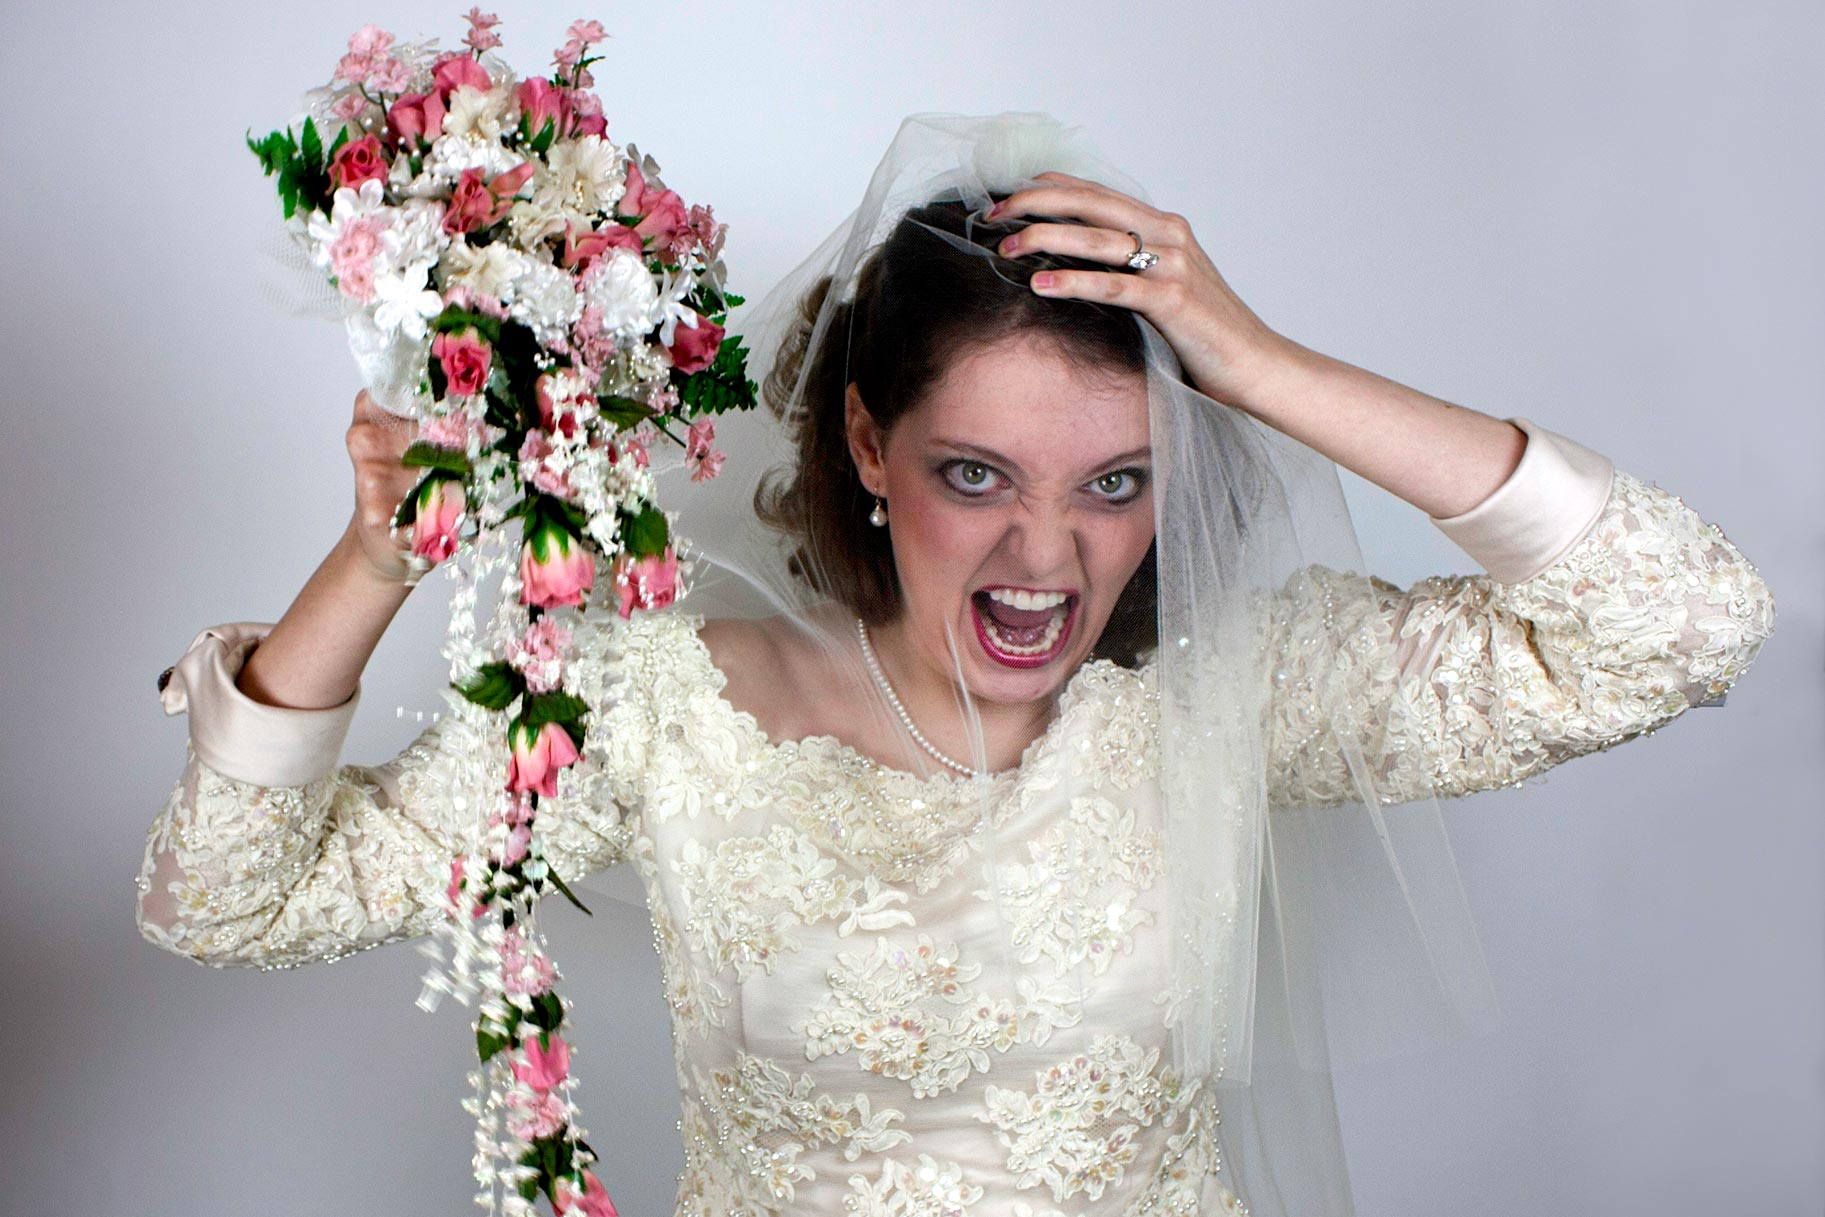 Bridezilla Goes Over Wedding Budget Demands Bridesmaids Pay For Gown: Ugly Wedding Dress Cake At Reisefeber.org